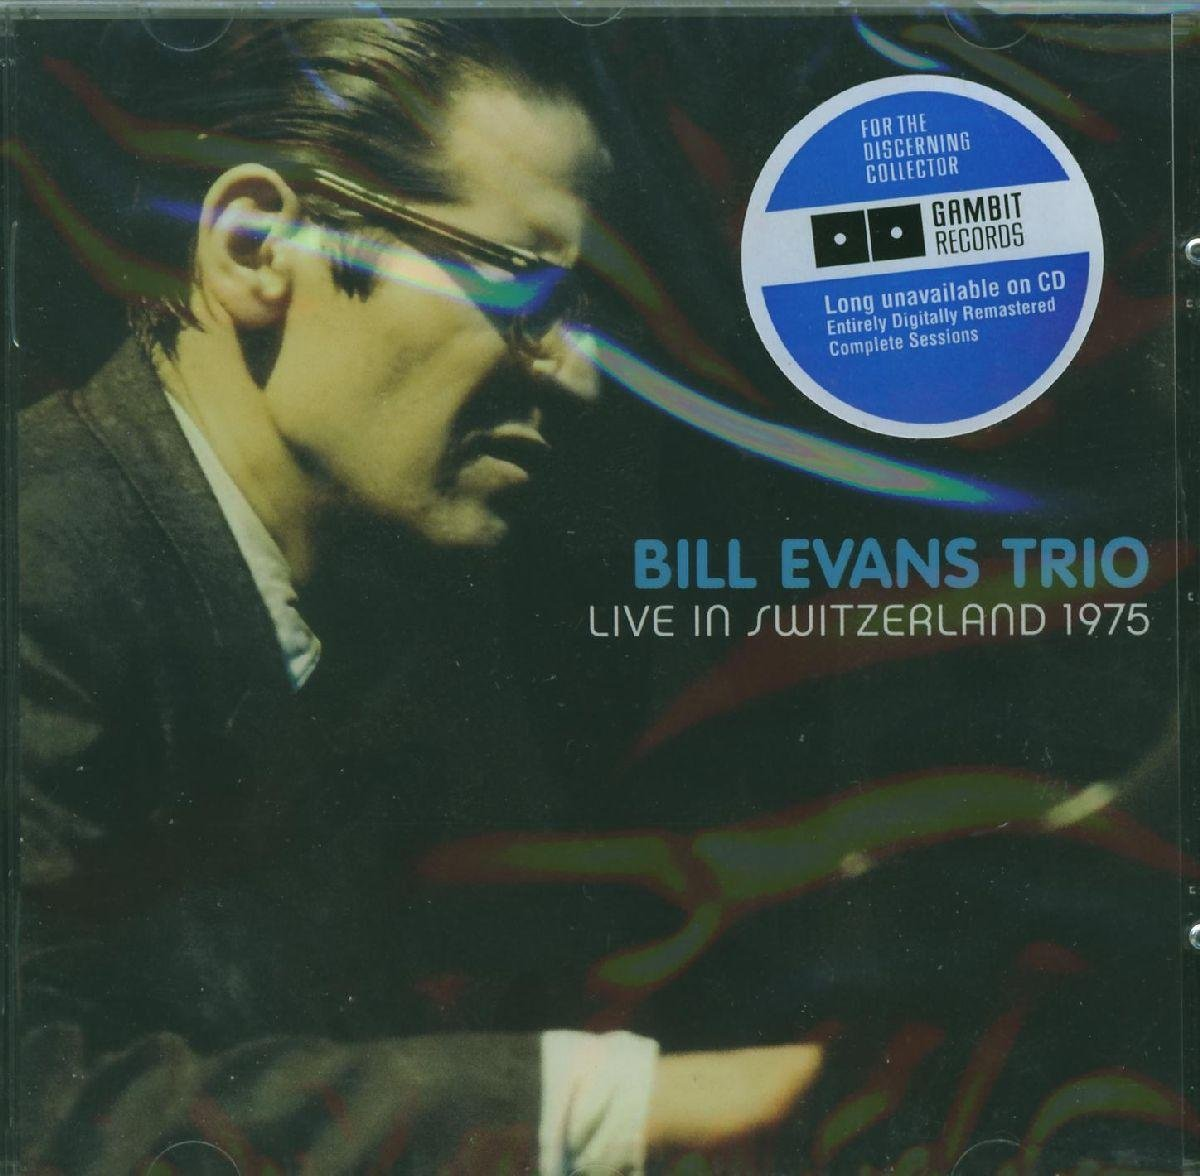 Bill Evans, Trio Live in Switzerland 1975 by Gambit Spain